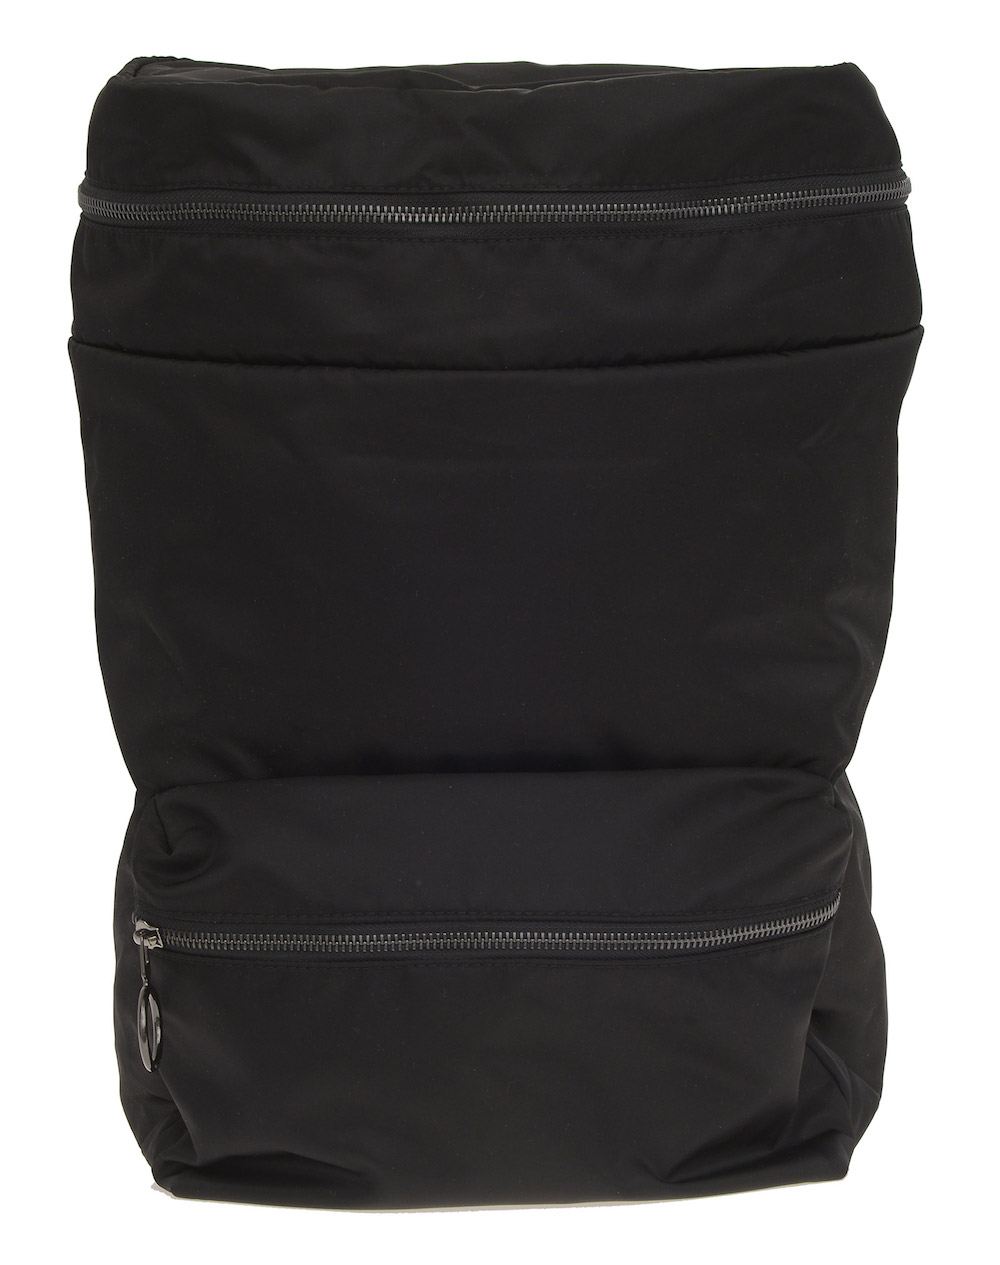 Industrial Squared Backpack